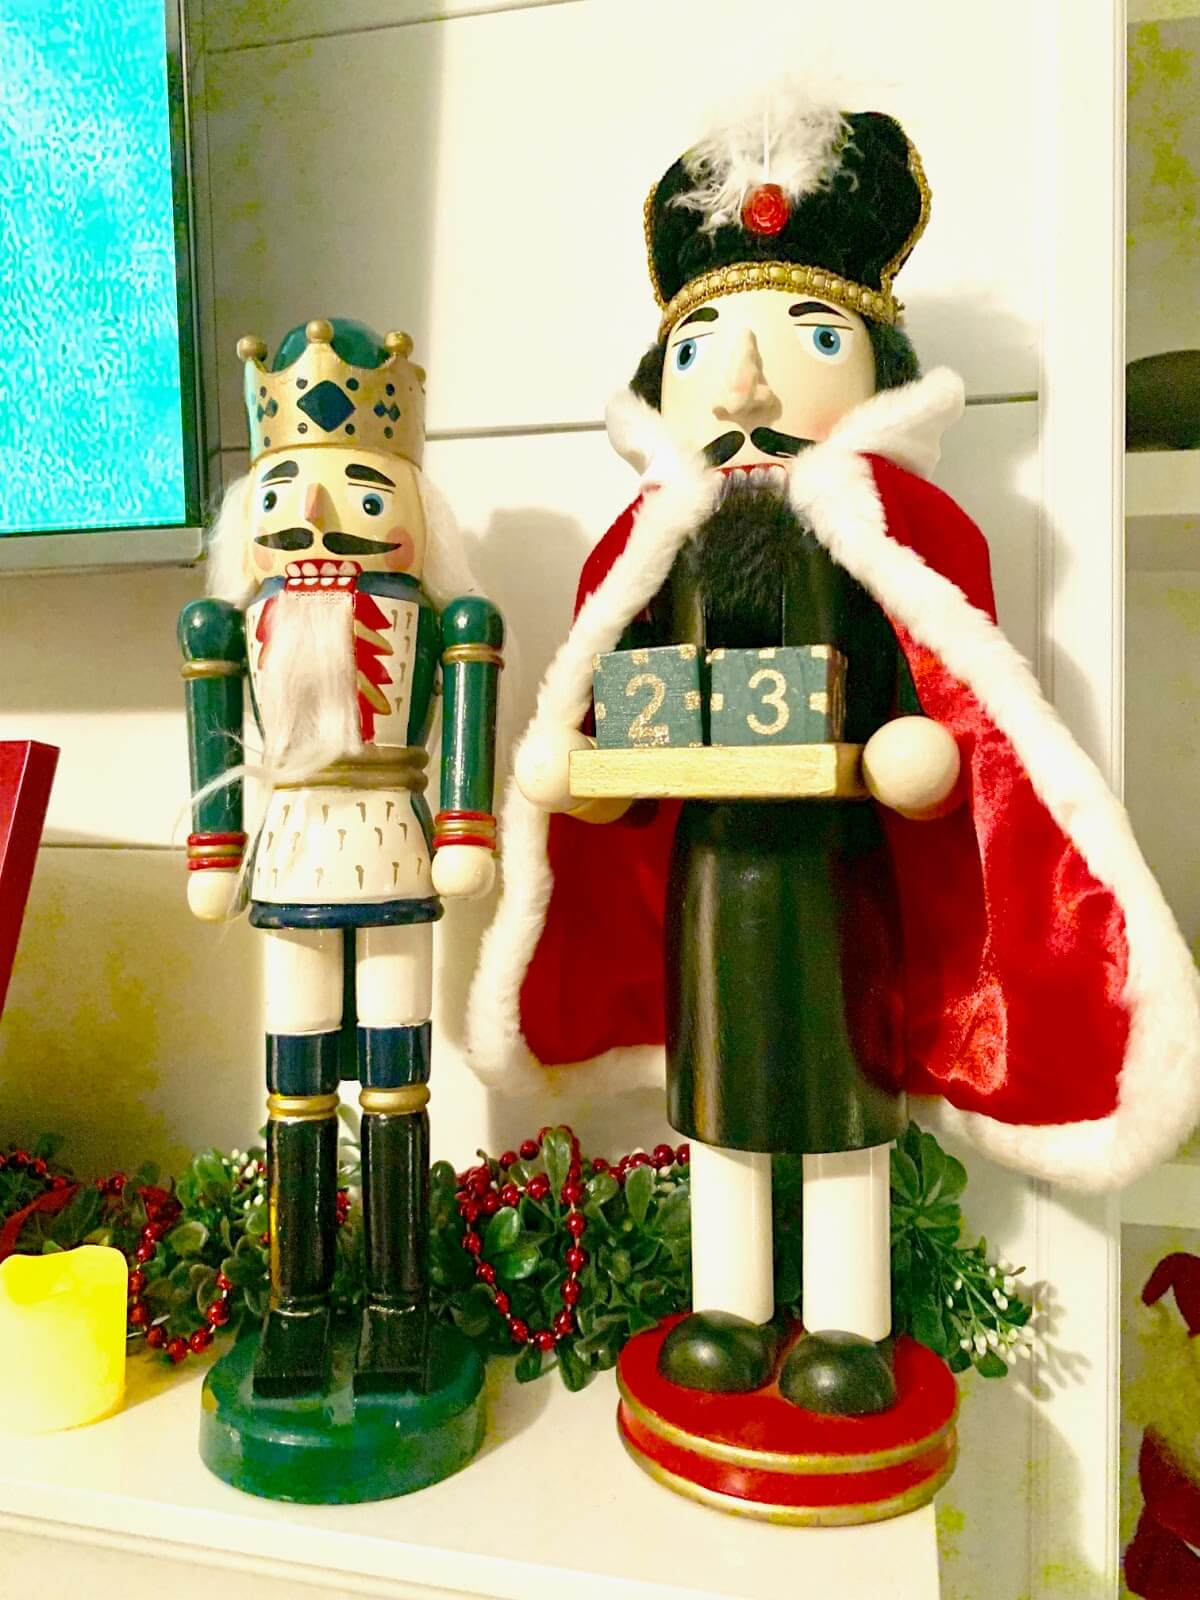 Classic and Ornate Holiday Nutcrackers